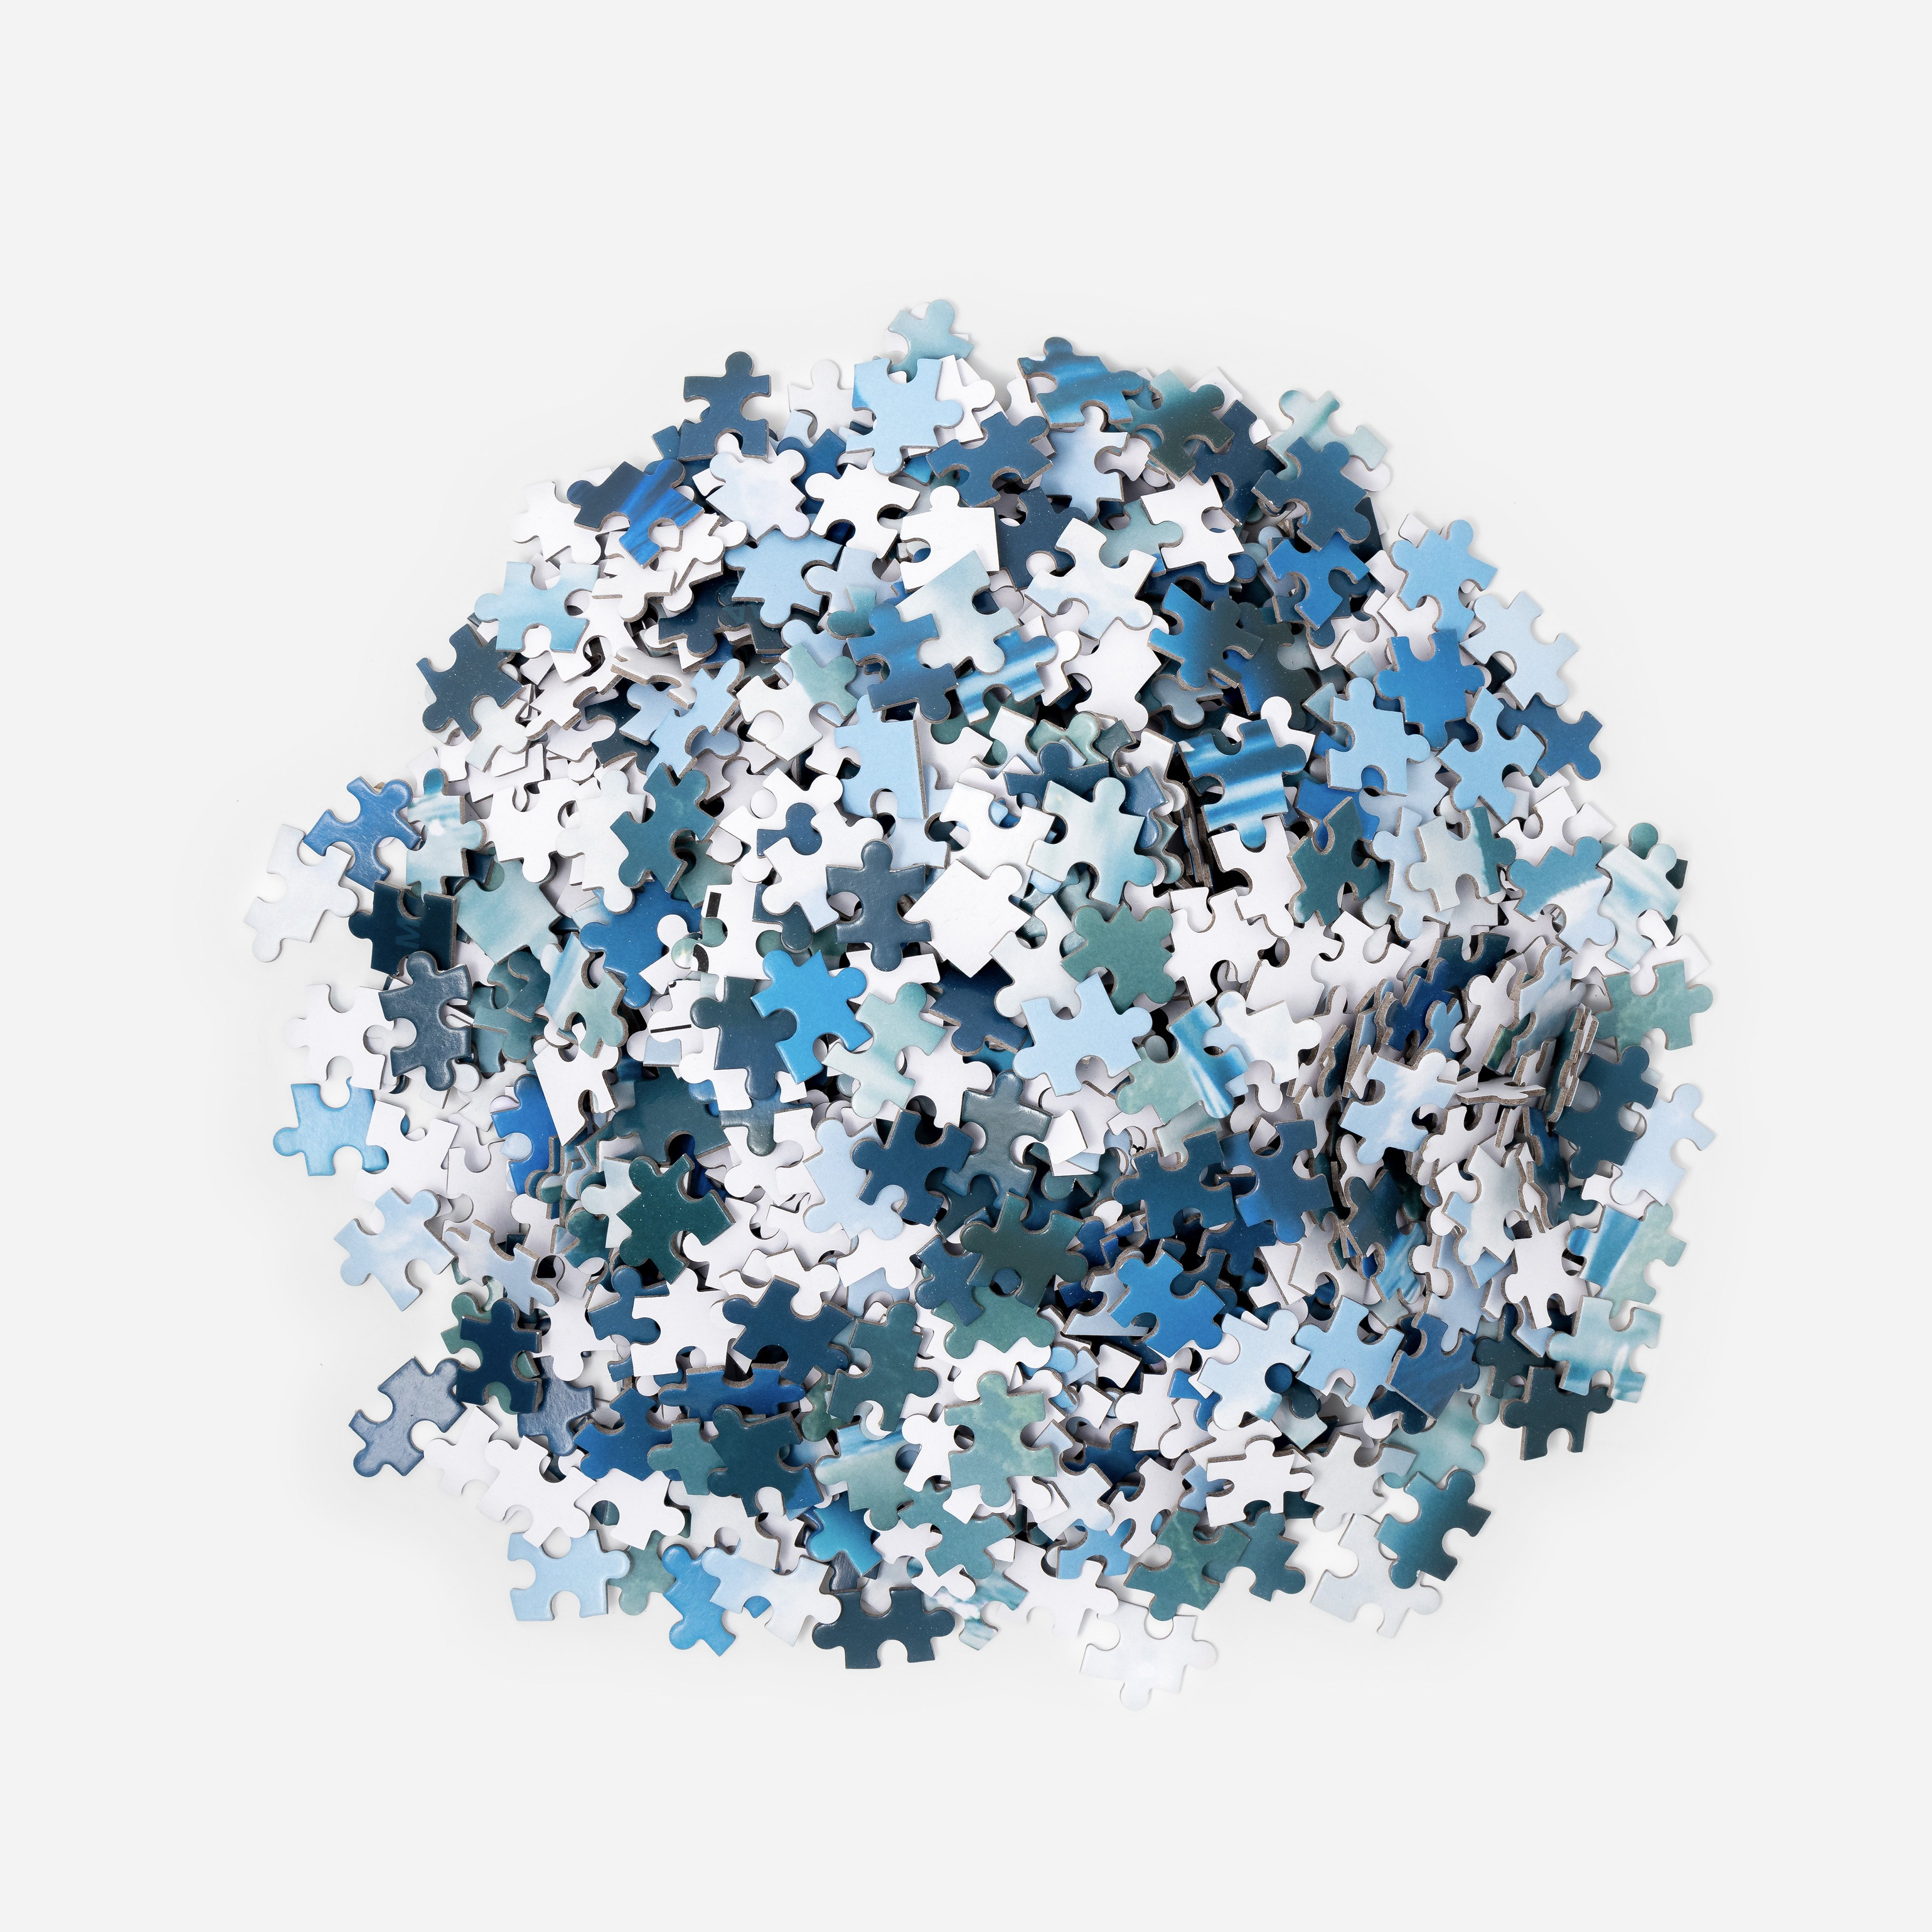 Puzzle for Good Pieces in a Pile Top